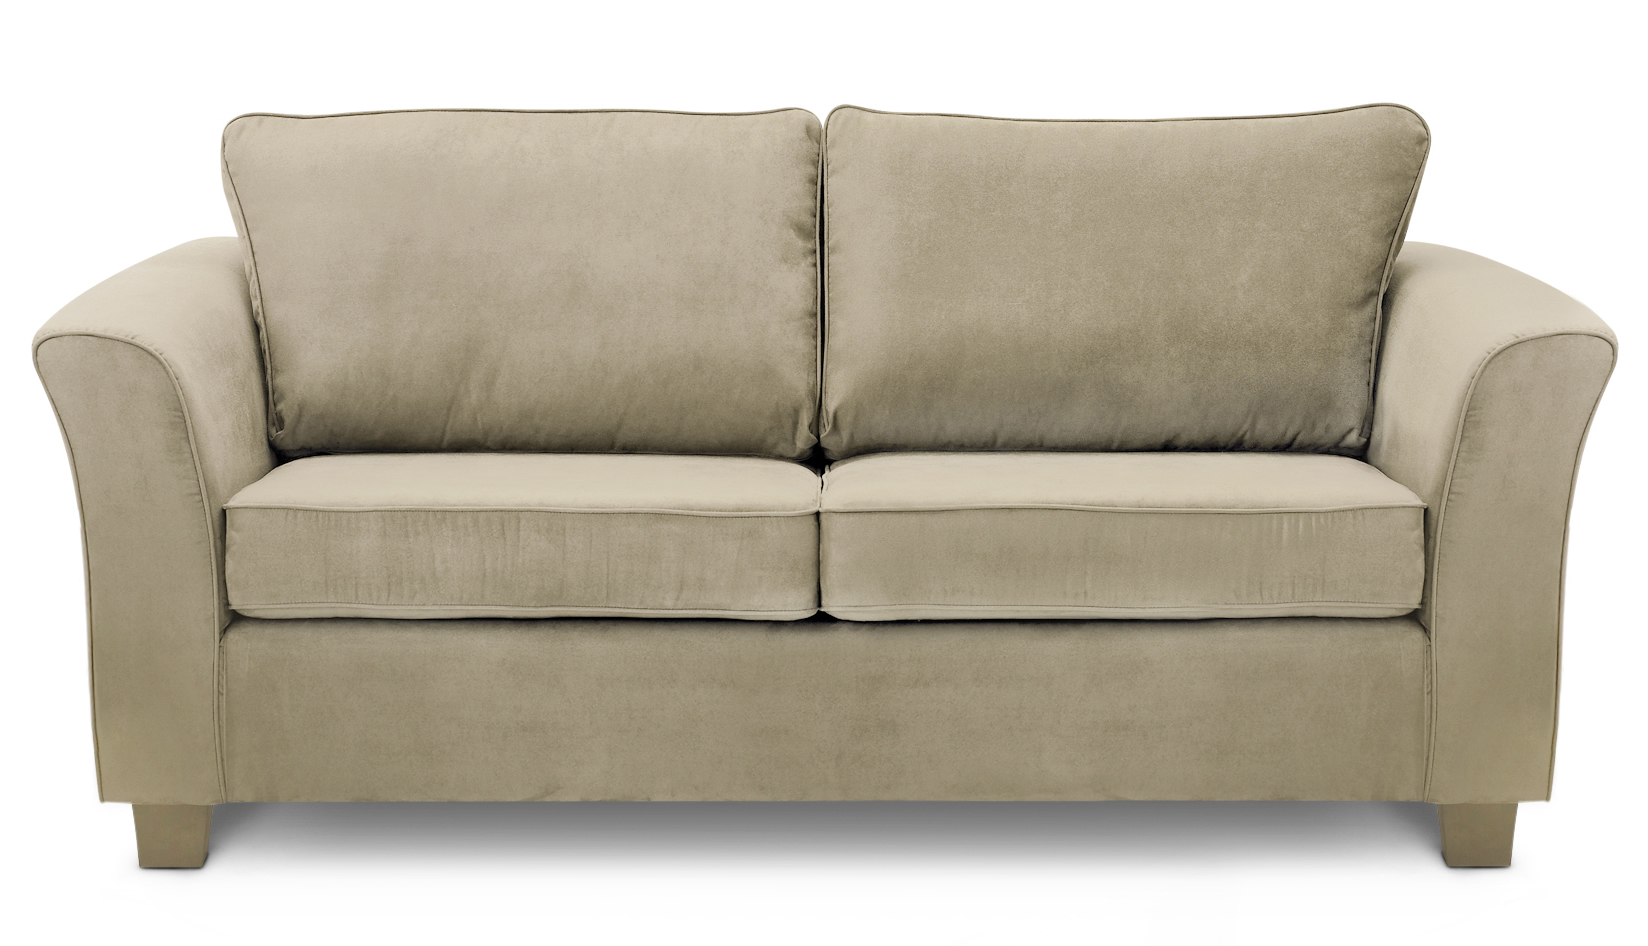 Sofas On Sale Ikea Couch Sofa Ideas Interior Design